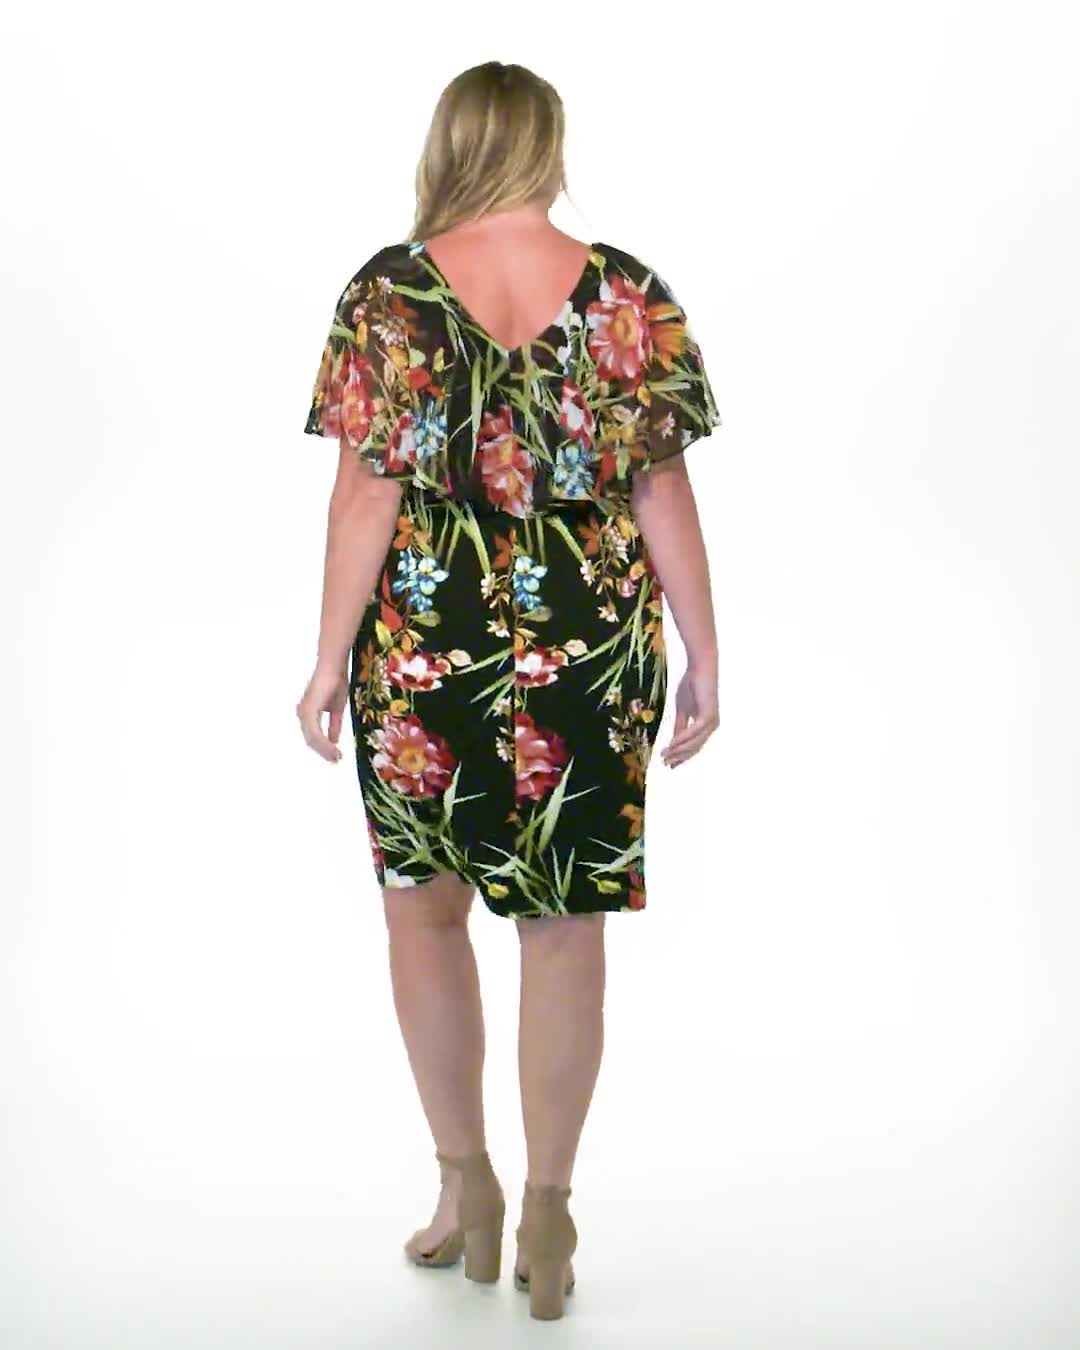 Amy Tropical Floral Dress - Plus - Video